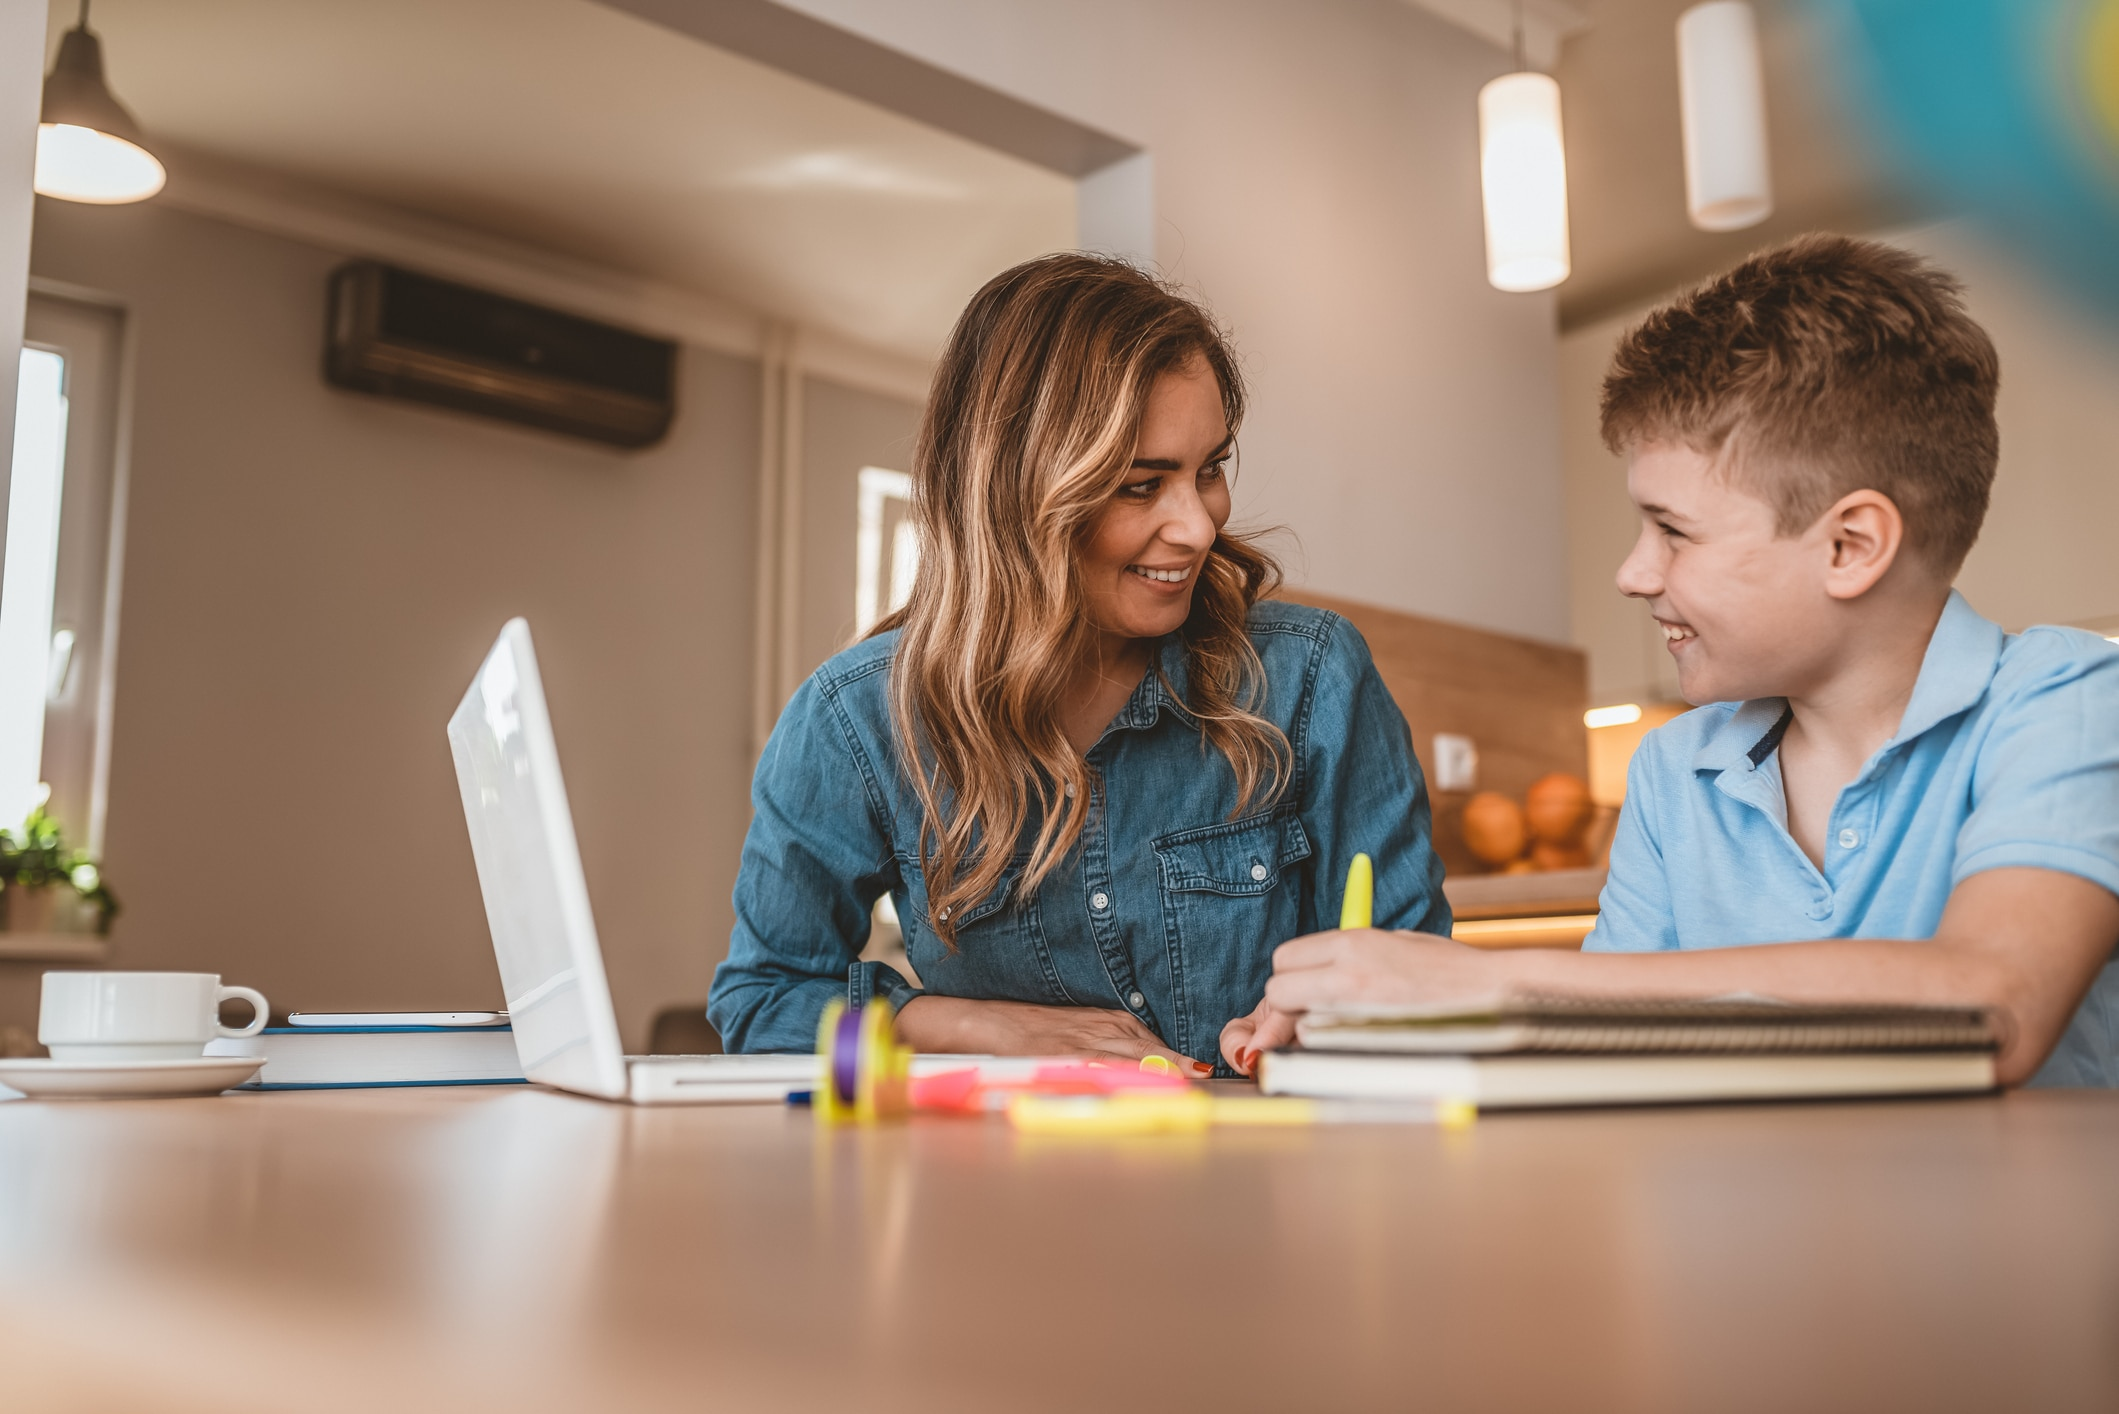 Mom helping son with education at home